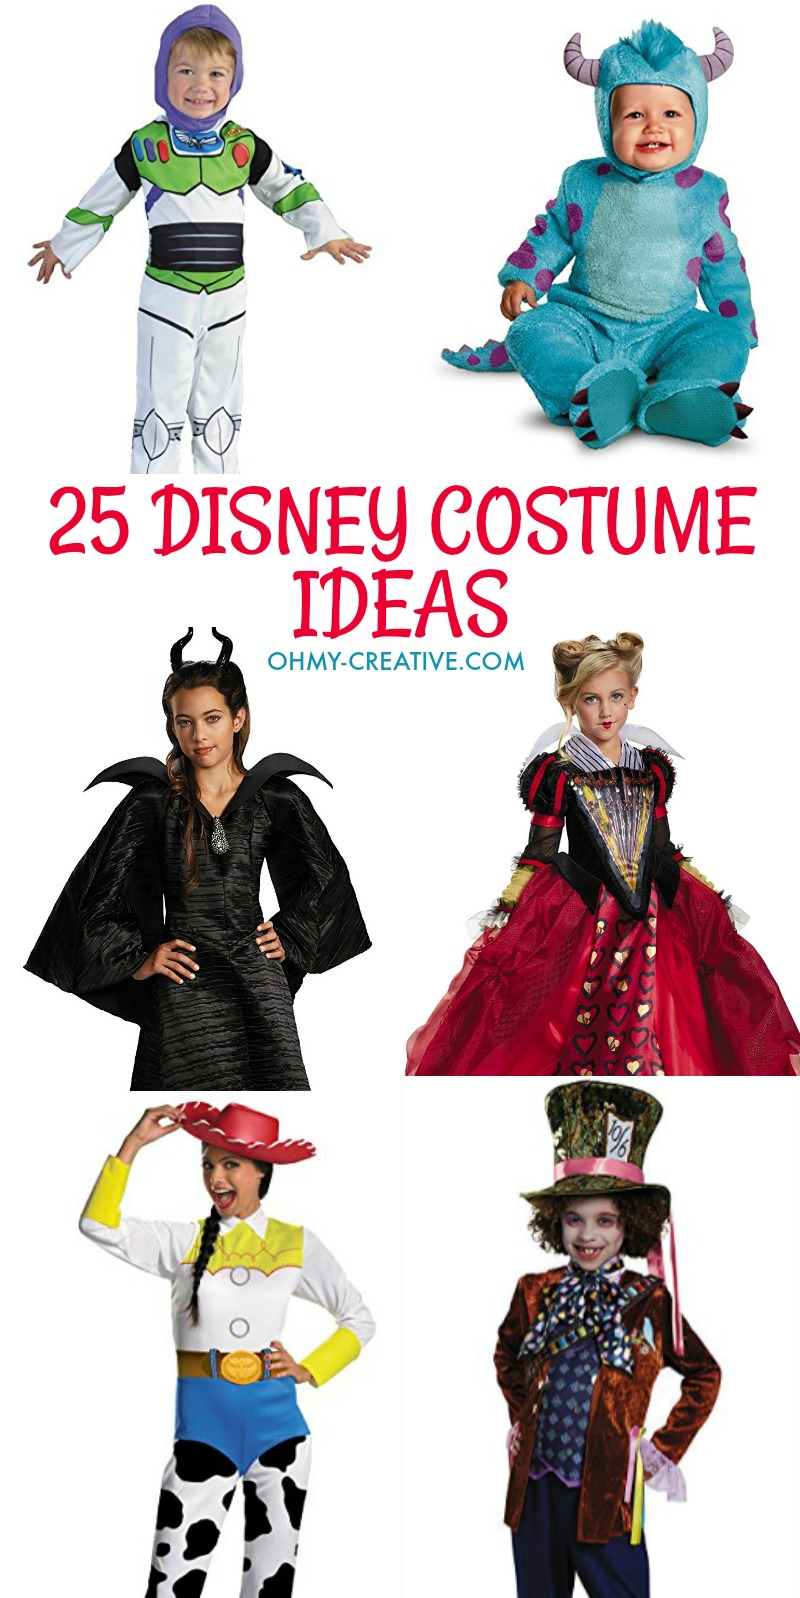 25 Disney costume ideas